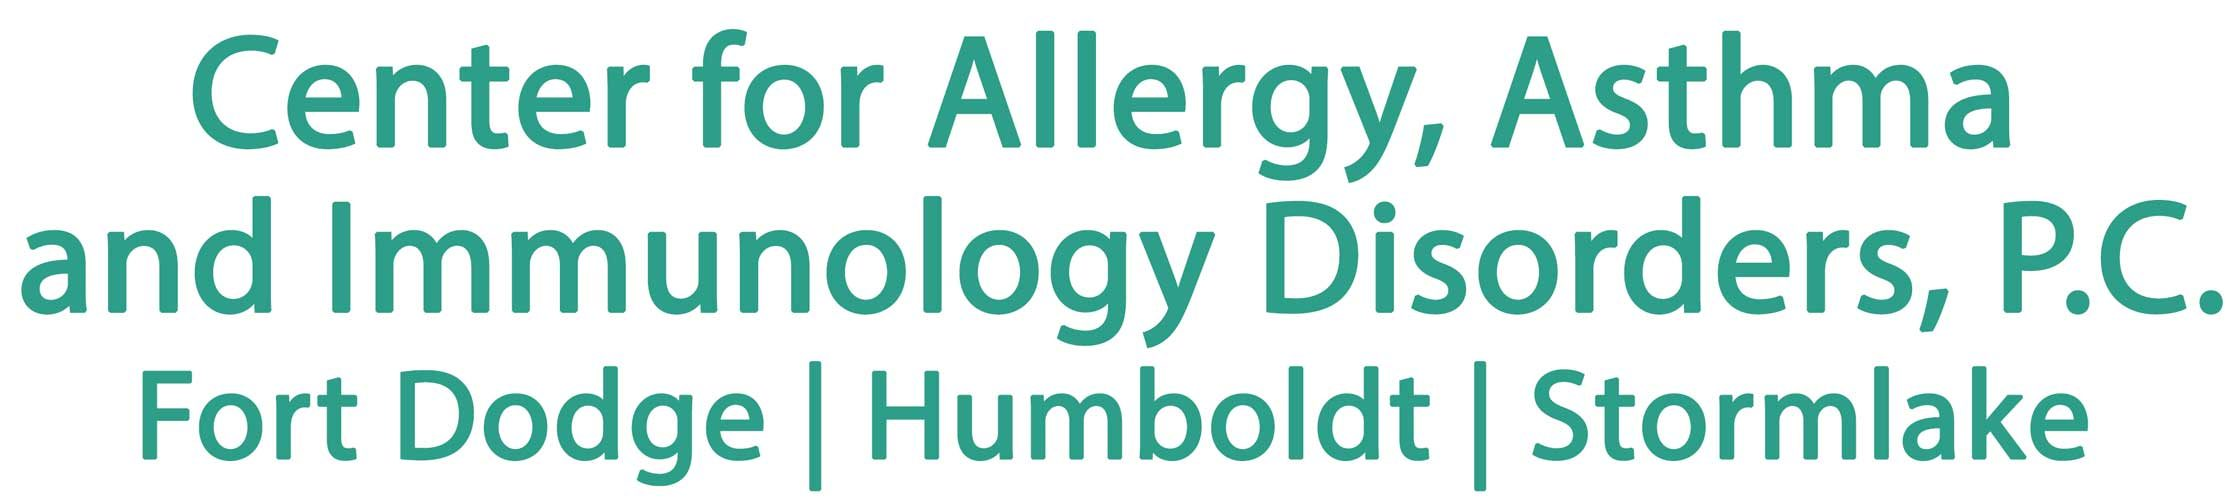 Center for Allergy, Asthma and Immunology DIsorder, P.C.